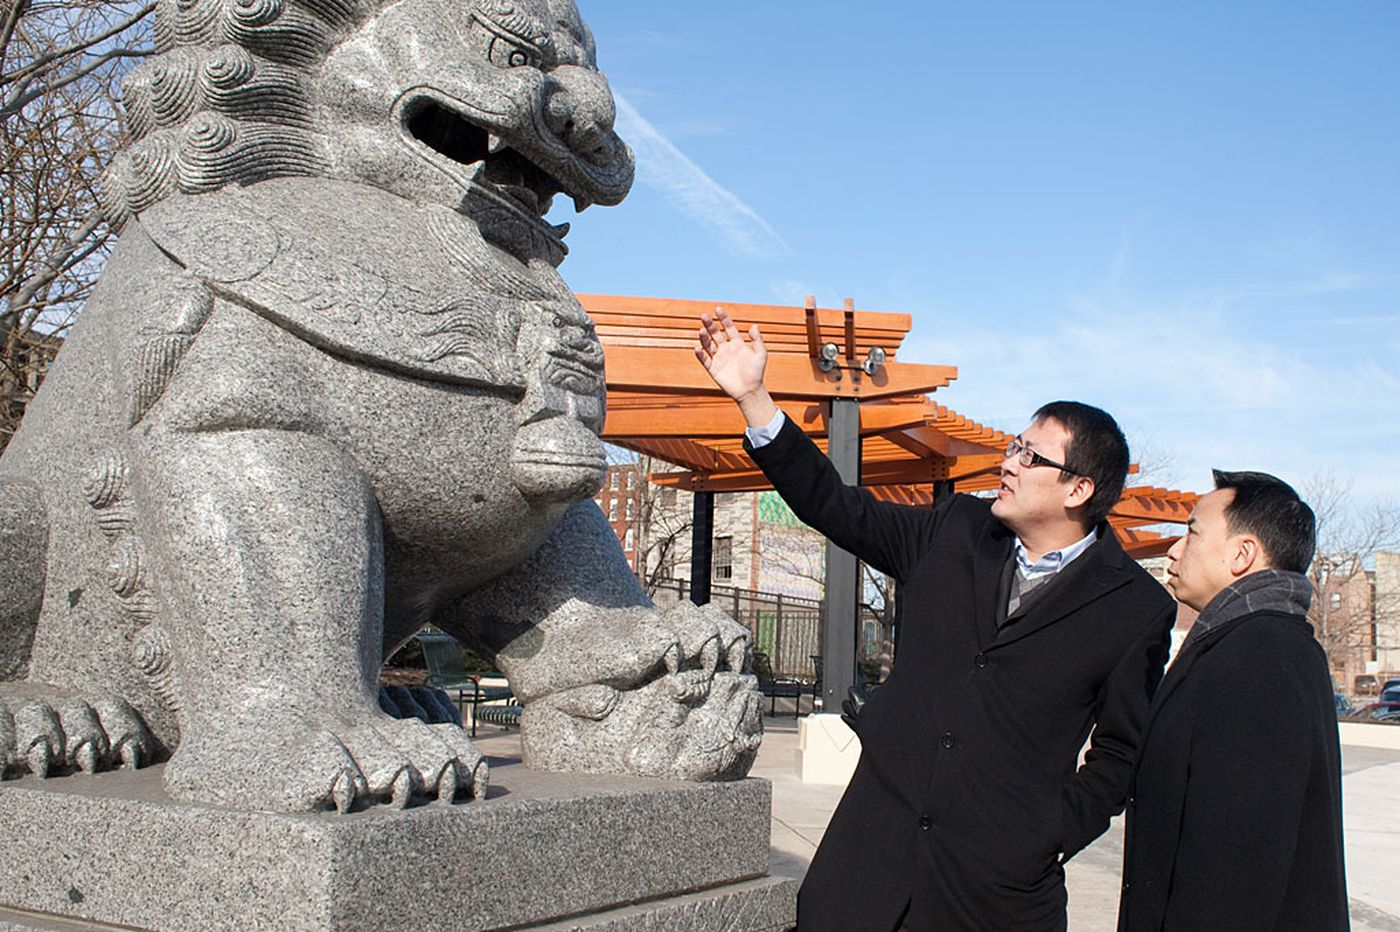 Vandalism of Chinatown school lion being investigated as possible hate crime